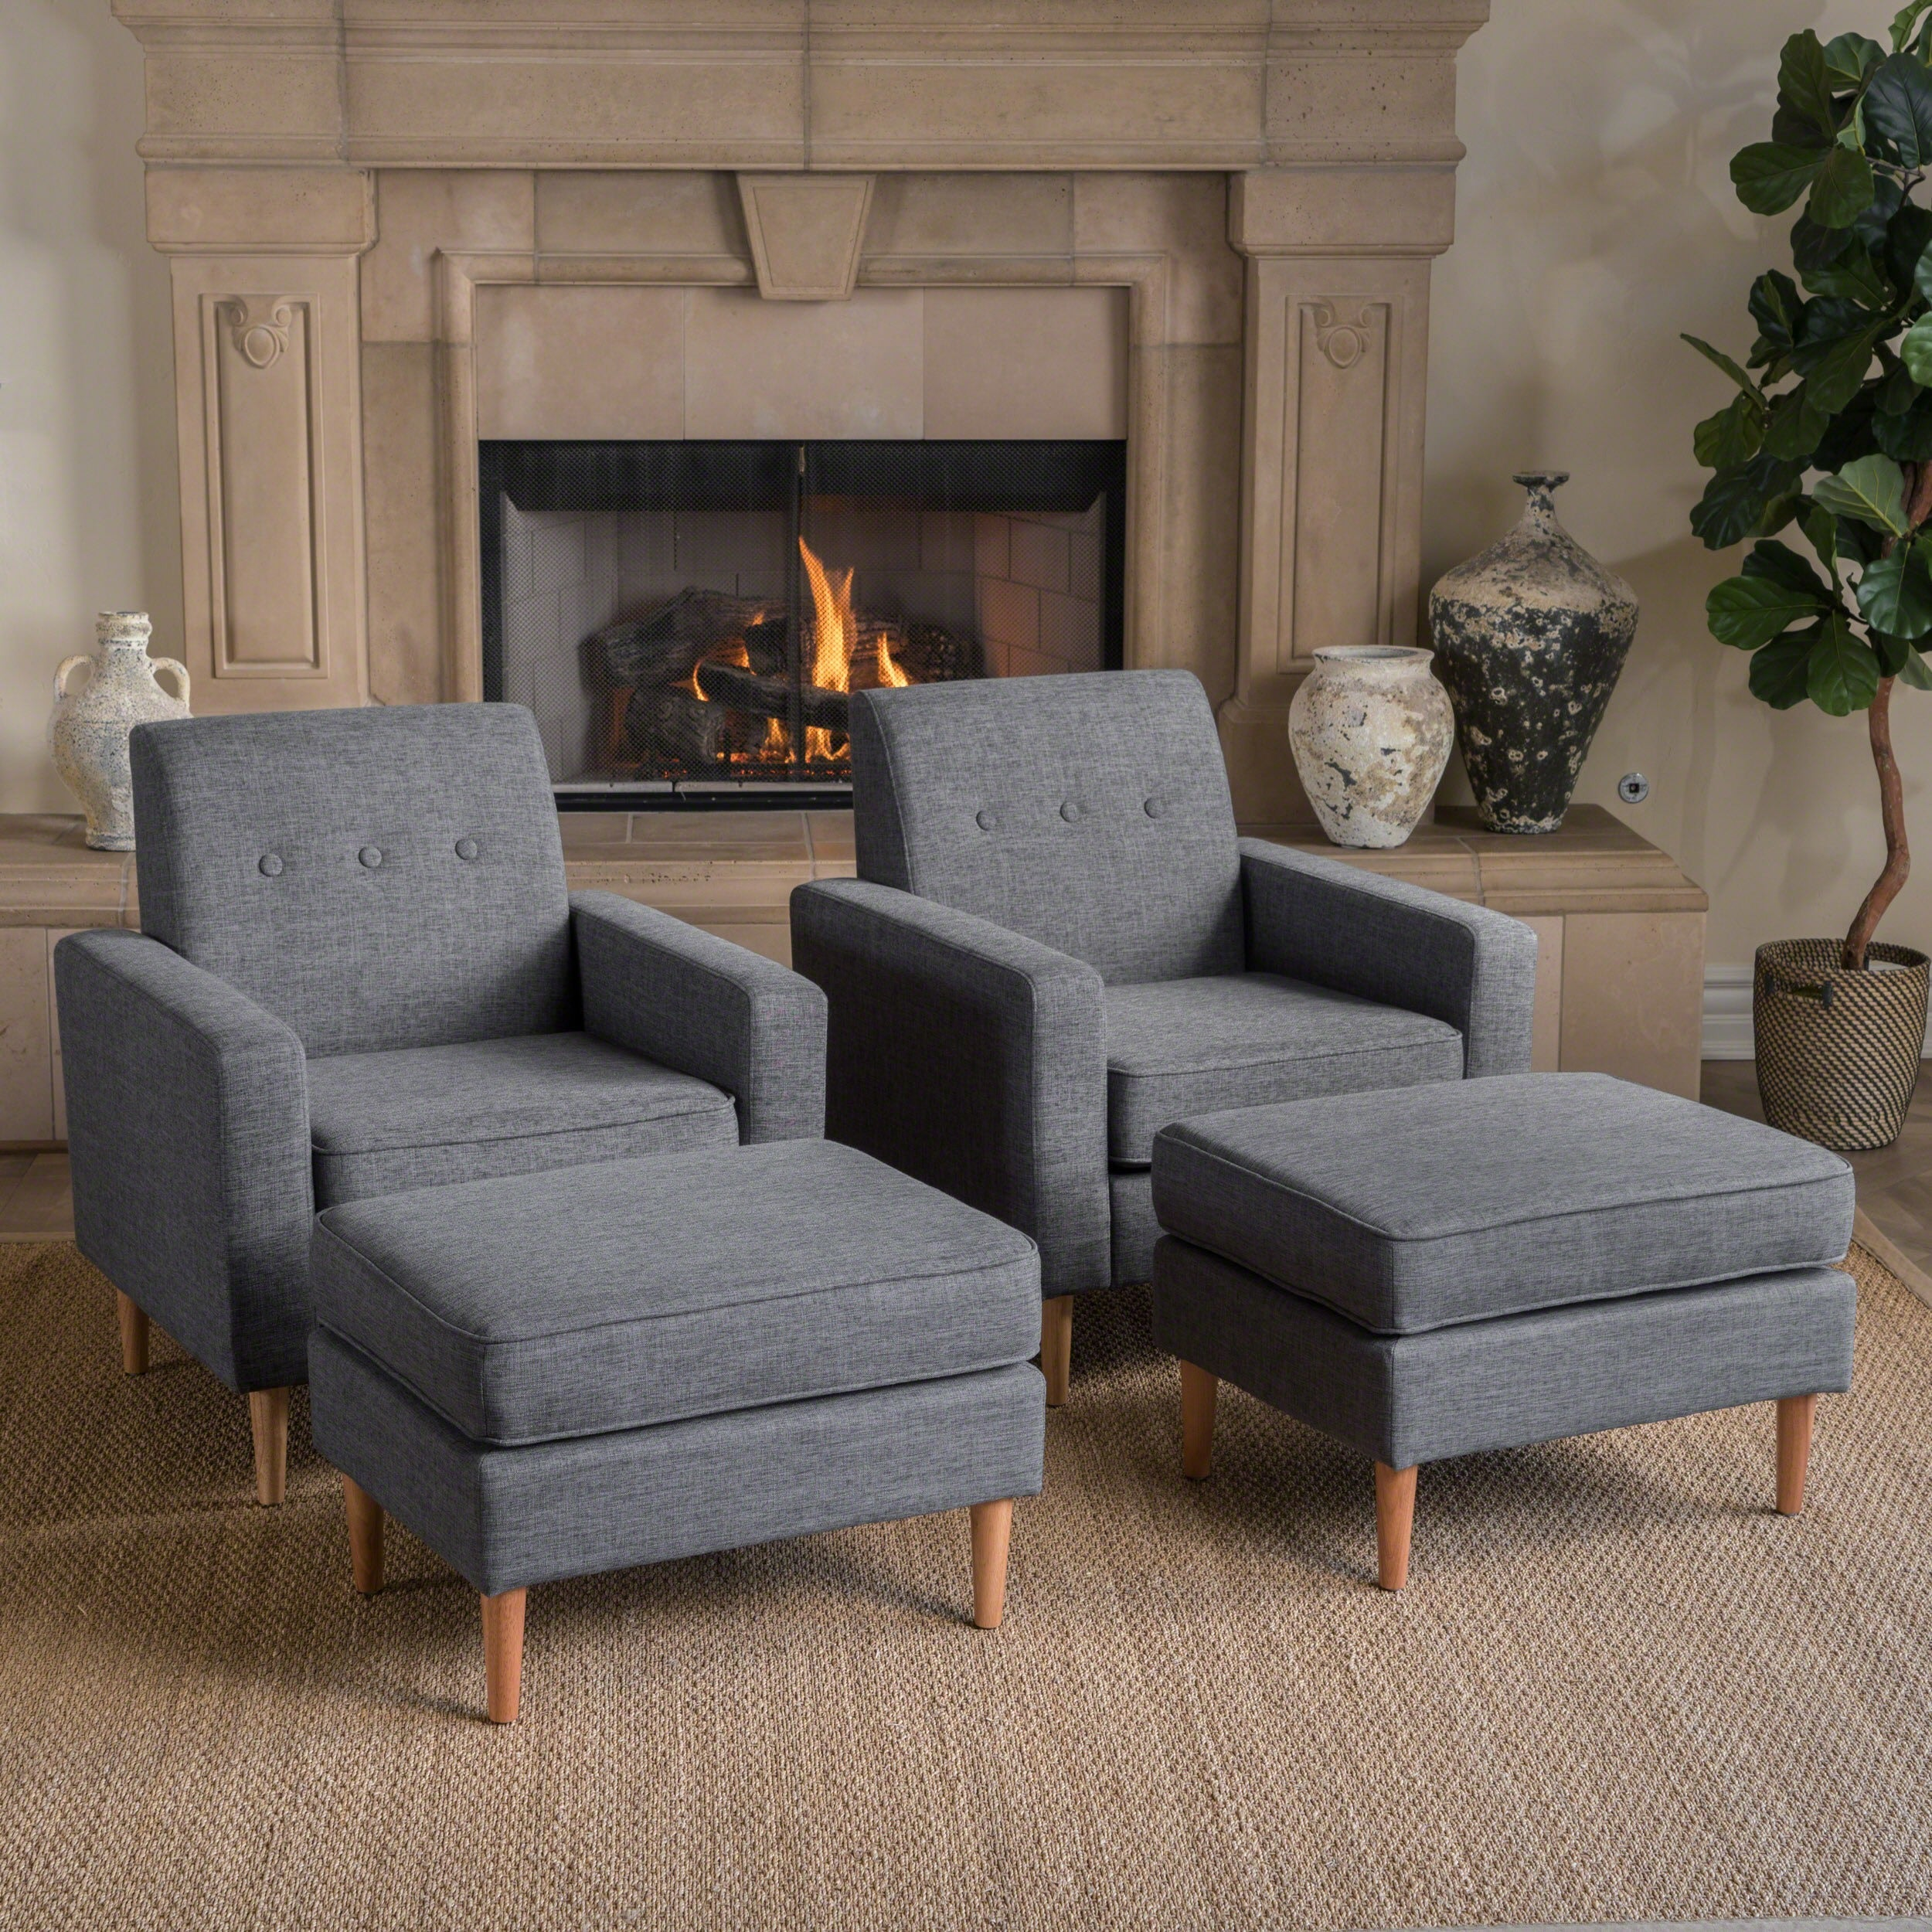 vibrantly from materials c furniture l for credited ireachmobi design and tufted chairs david lavish living accent with gray has overstock subscribed purple room ottomans popular chair stylish pattern colored